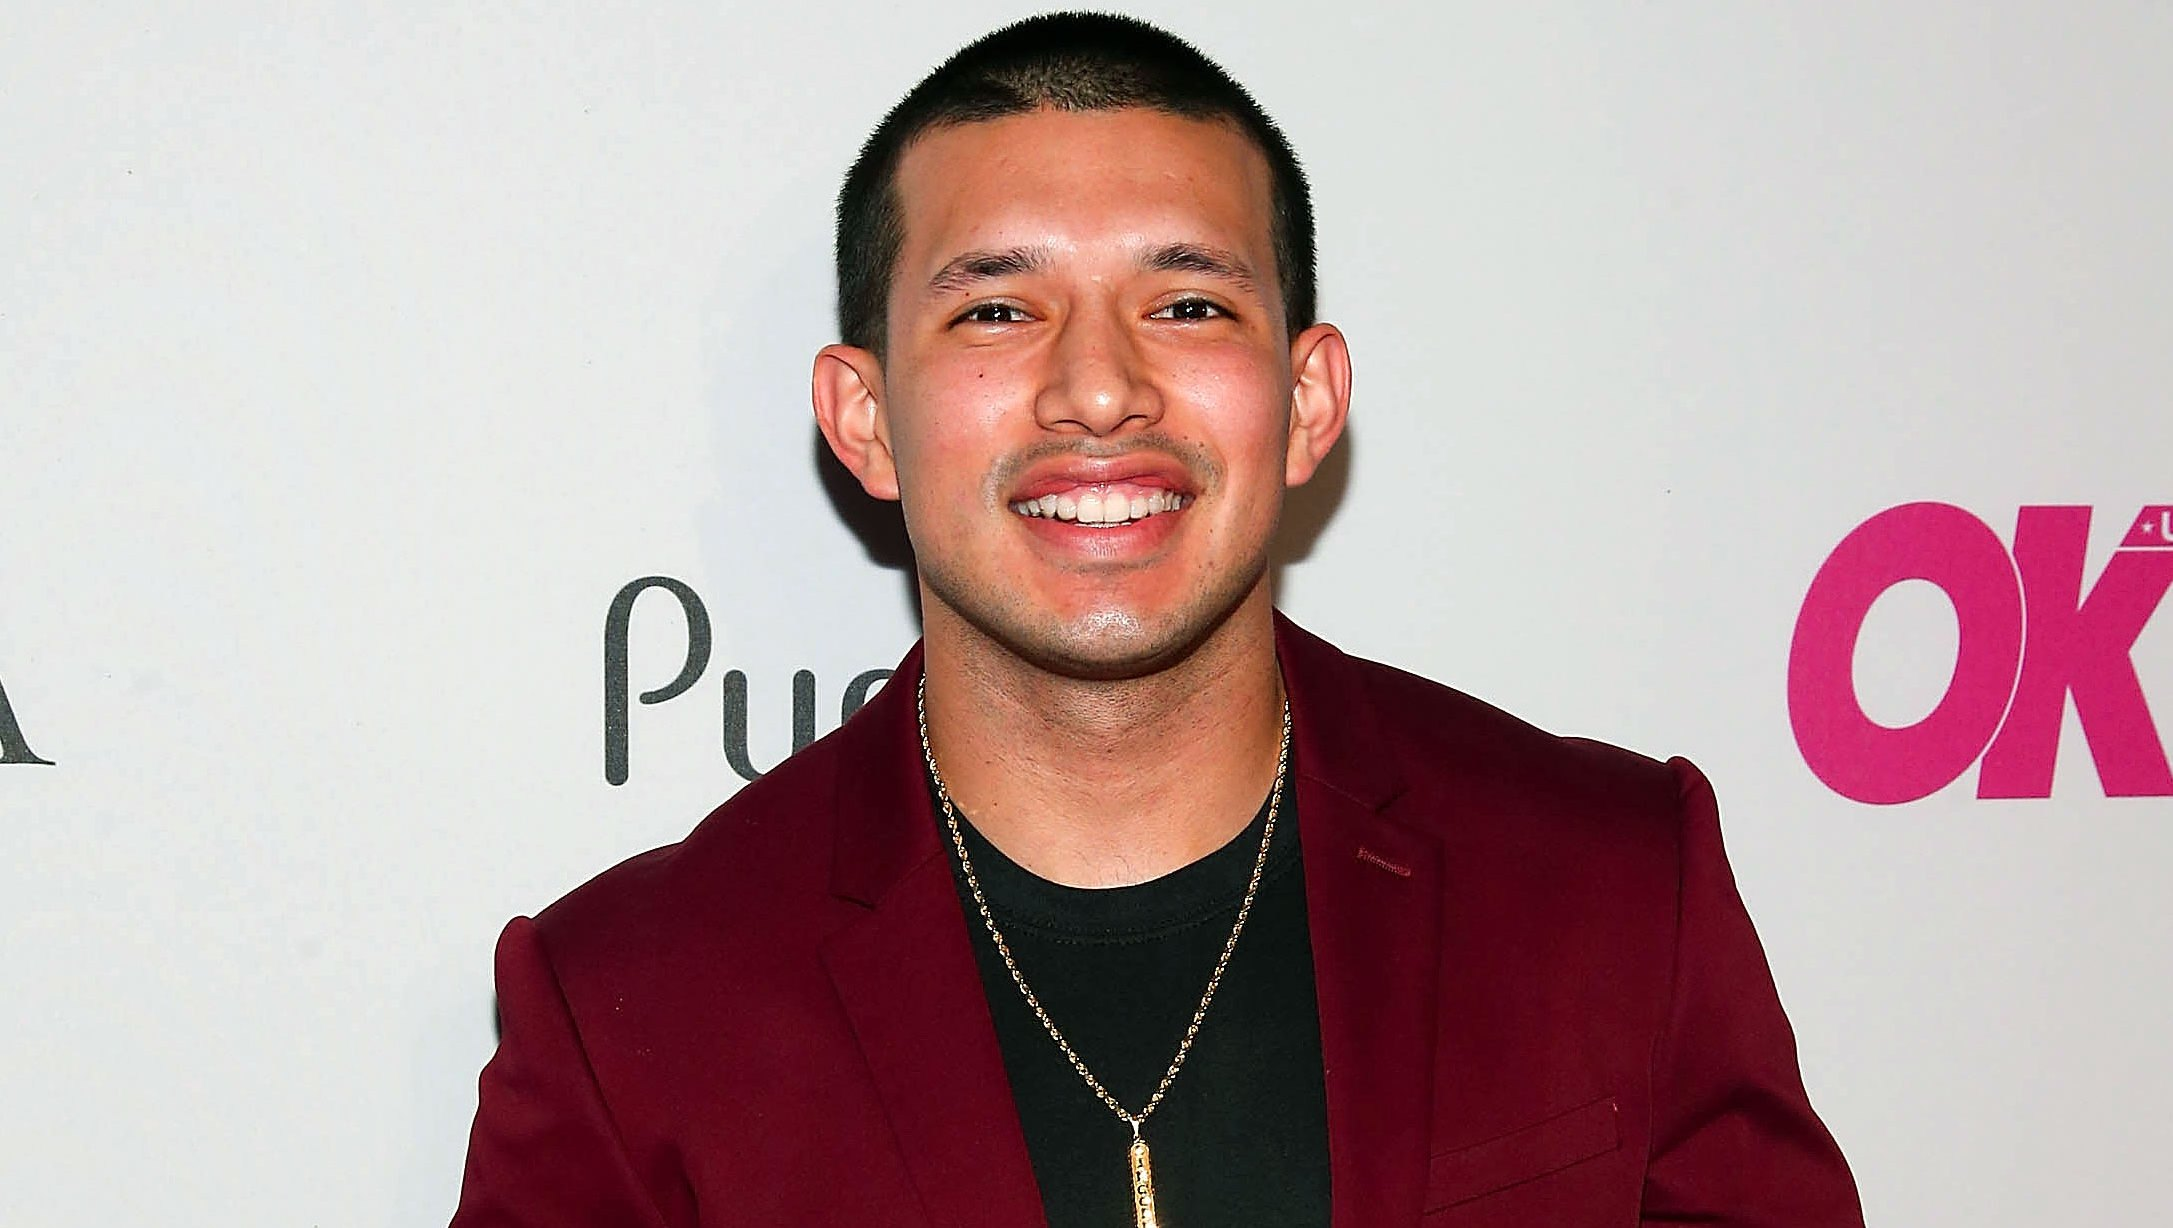 Javi Marroquin Propose to GF Lauren Comeau This Year